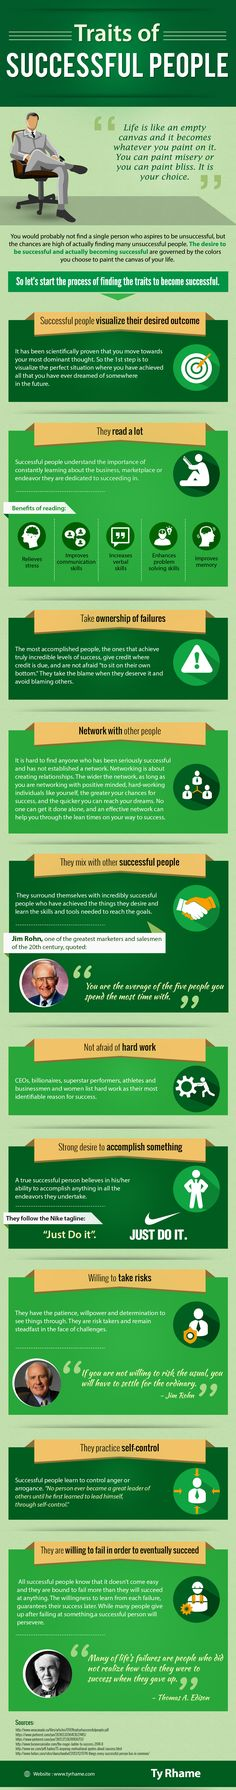 Check my infographic about Traits of Successful People.